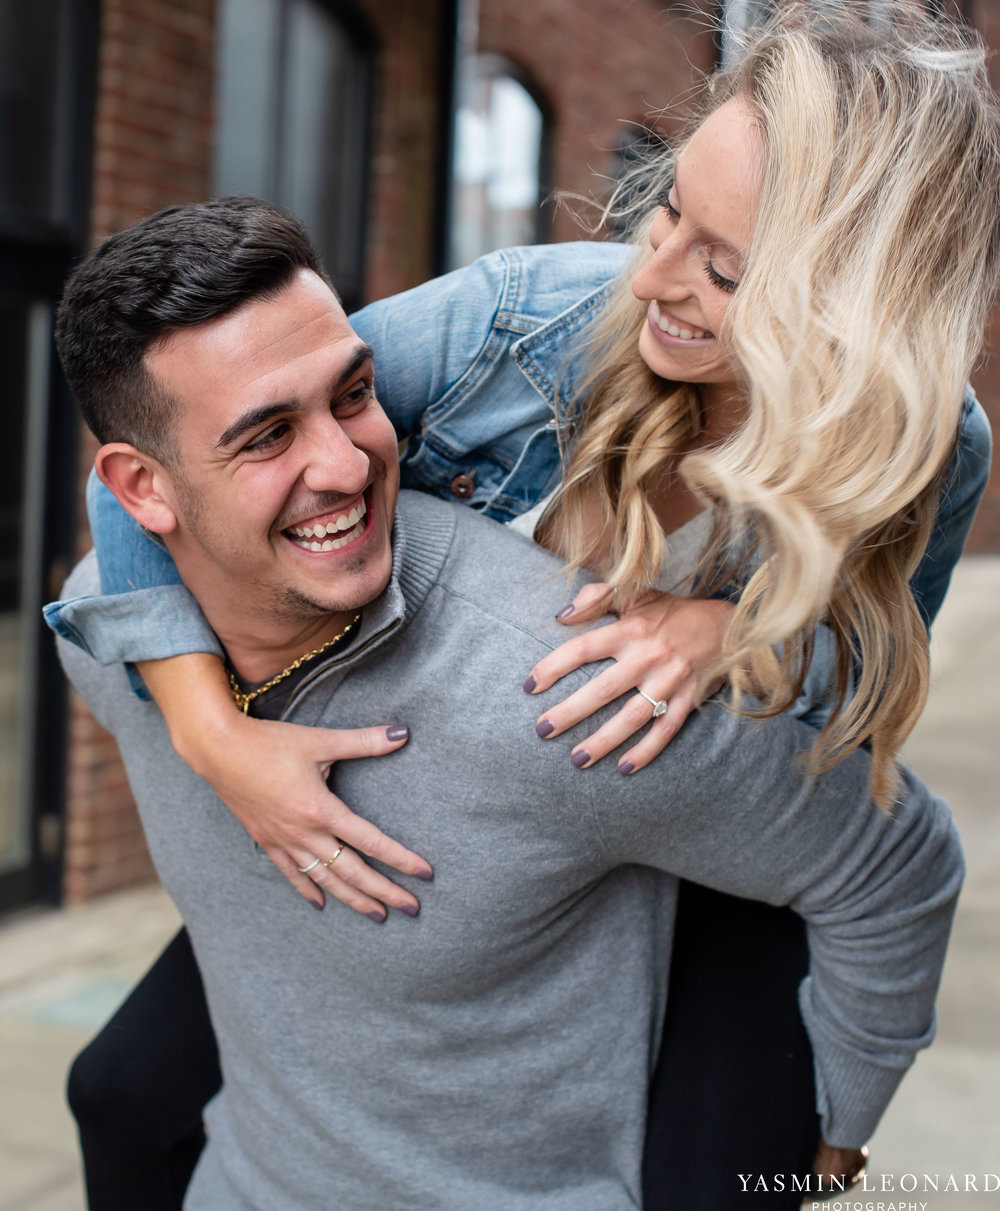 High Point Wedding Photographer - High Point Engagement PIctures - Engagement Session Ideas - Yasmin Leonard Photography - High Point Photographer - NC Wedding Photographer -10.jpg